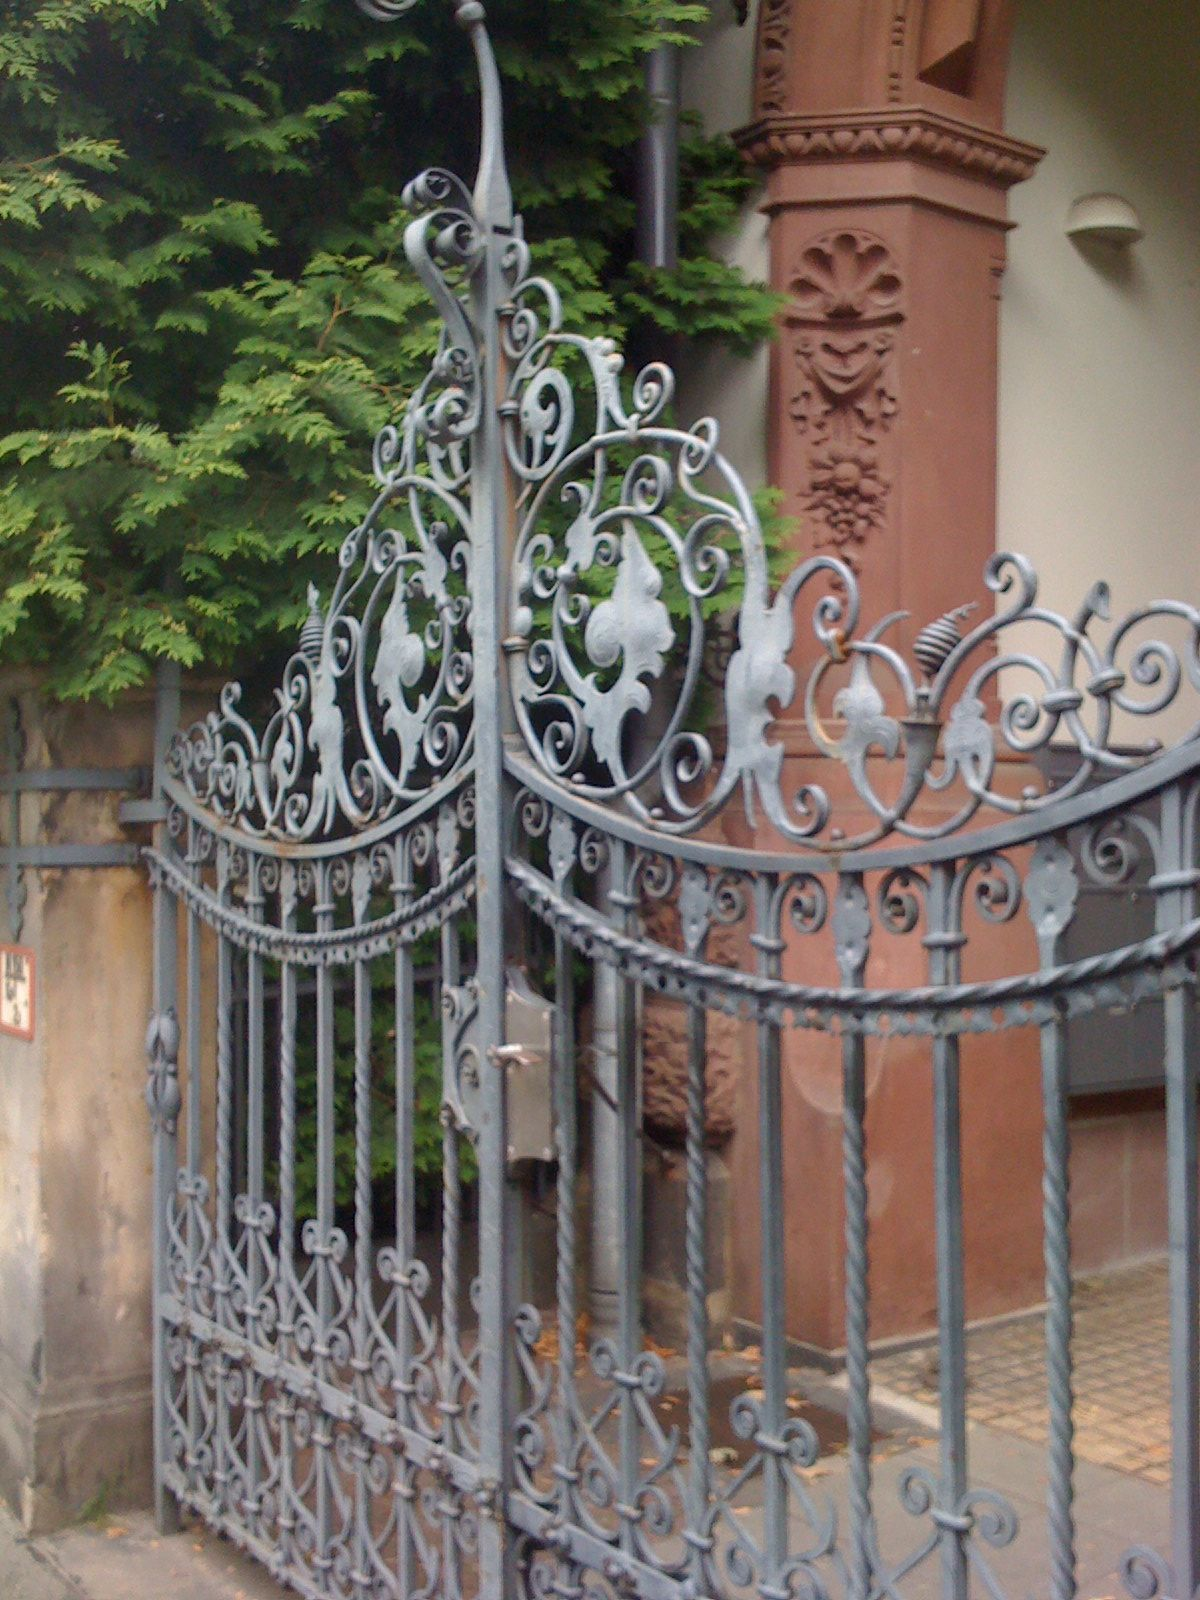 Wrought Iron Gate In Hanover Germany Wrought Iron Driveway Gates Metal Garden Gates Wrought Iron Gates